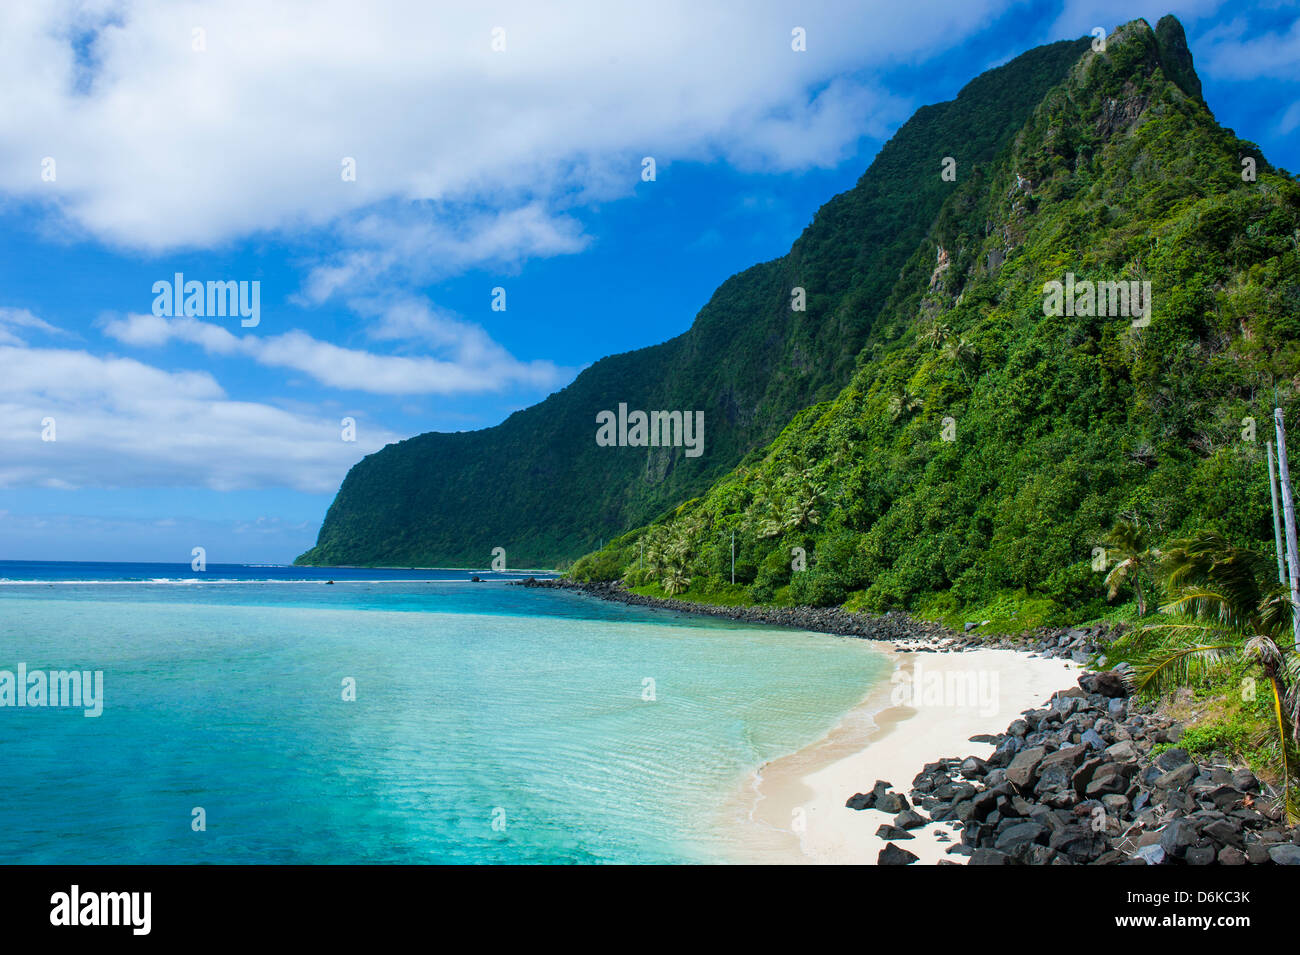 Turquoise water and white sand beach on Ofu Island, Manua Island group, American Samoa, South Pacific, Pacific - Stock Image